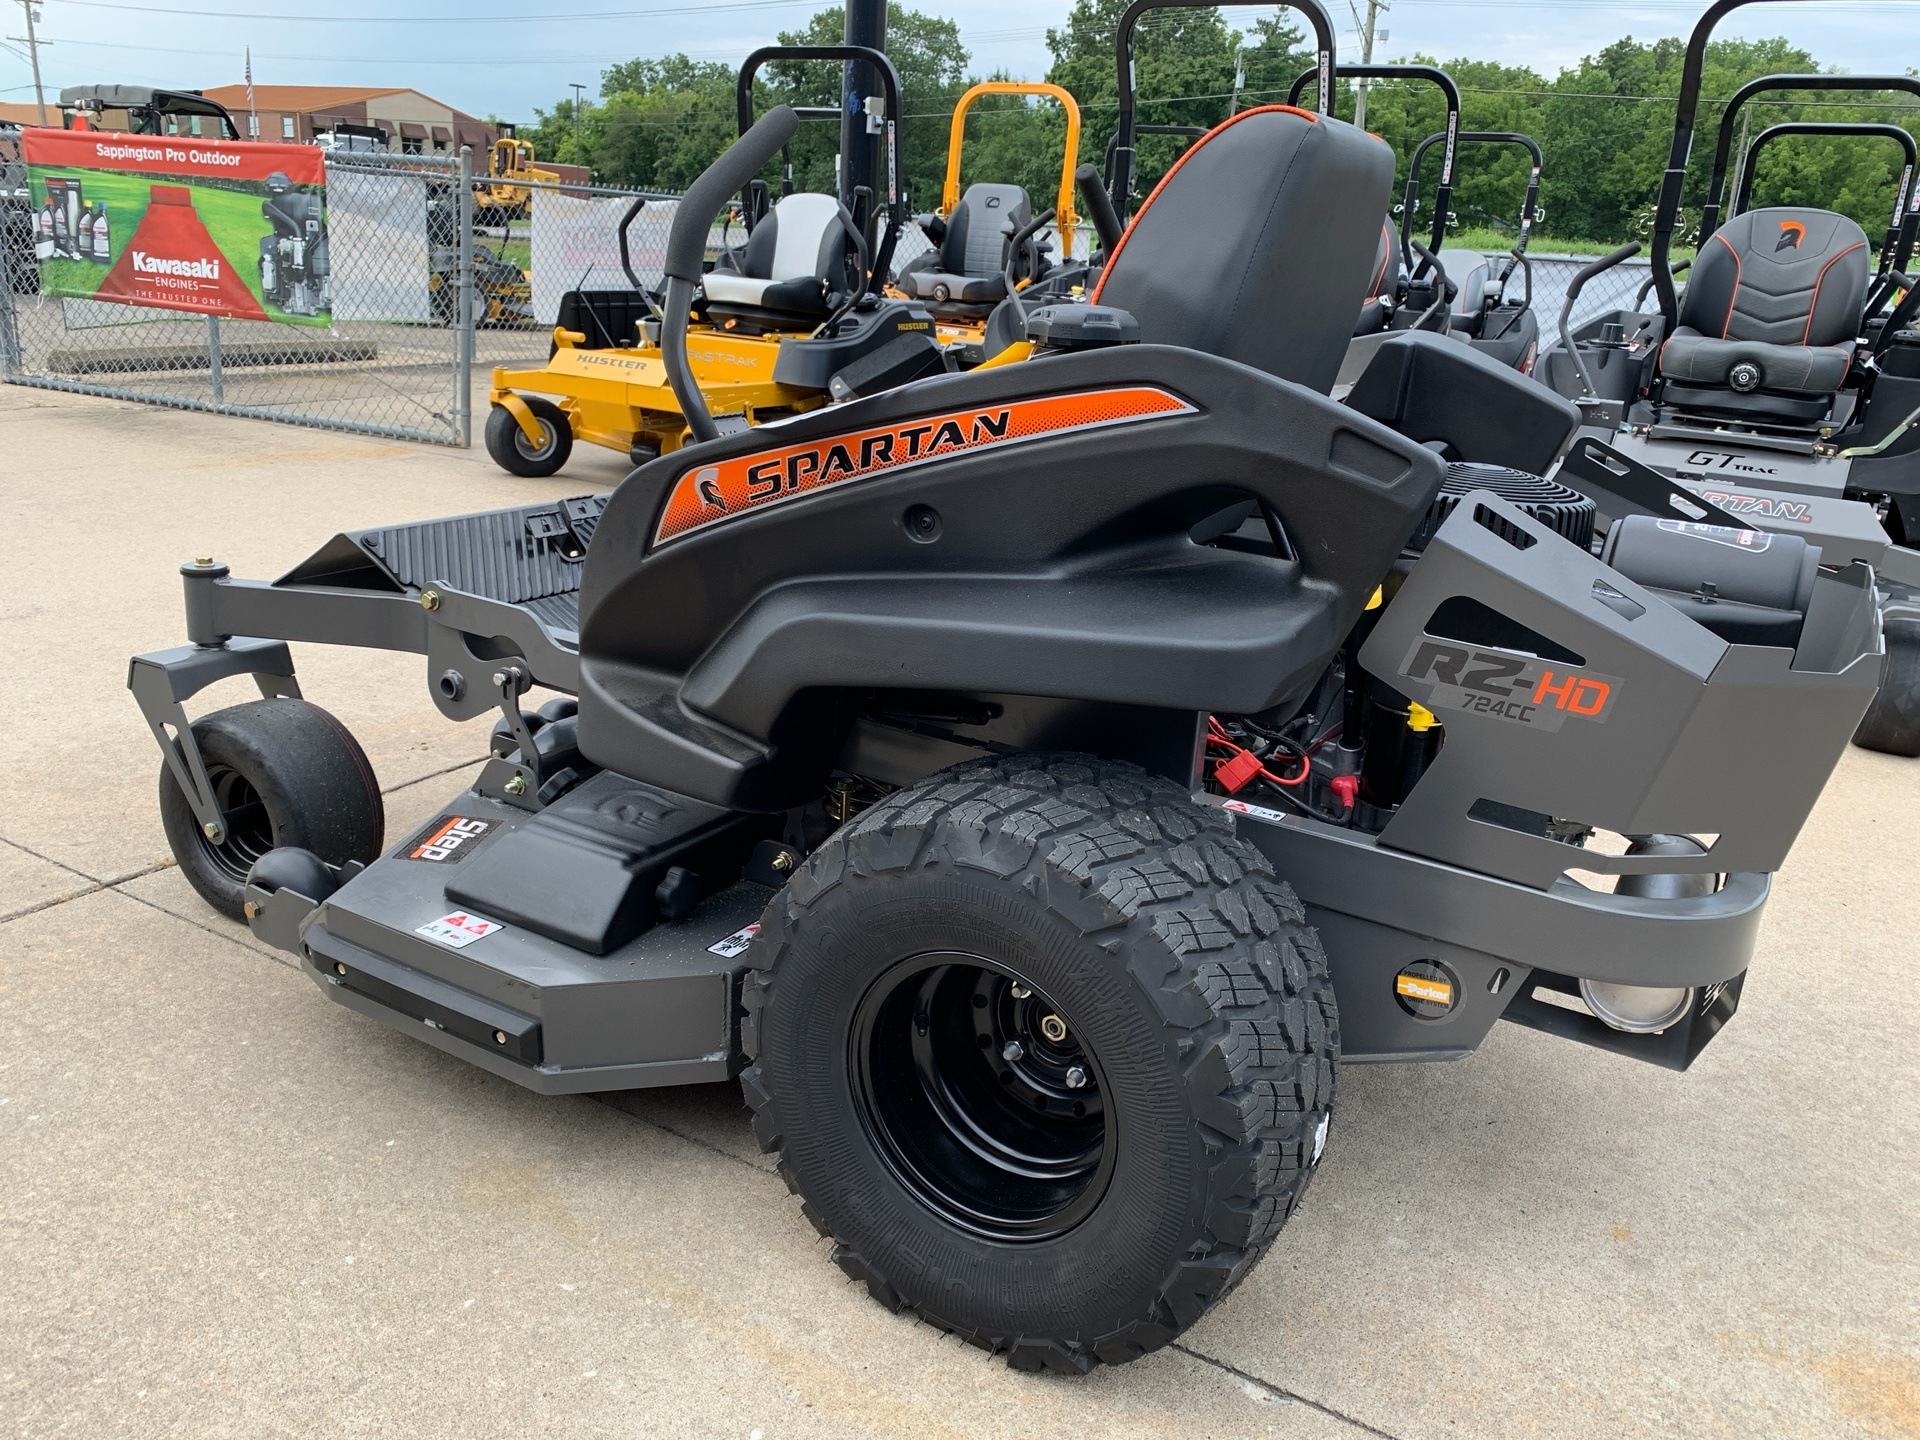 2019 Spartan Mowers RZ HD 54 in. Briggs & Stratton Commercial 25 hp in Jackson, Missouri - Photo 3